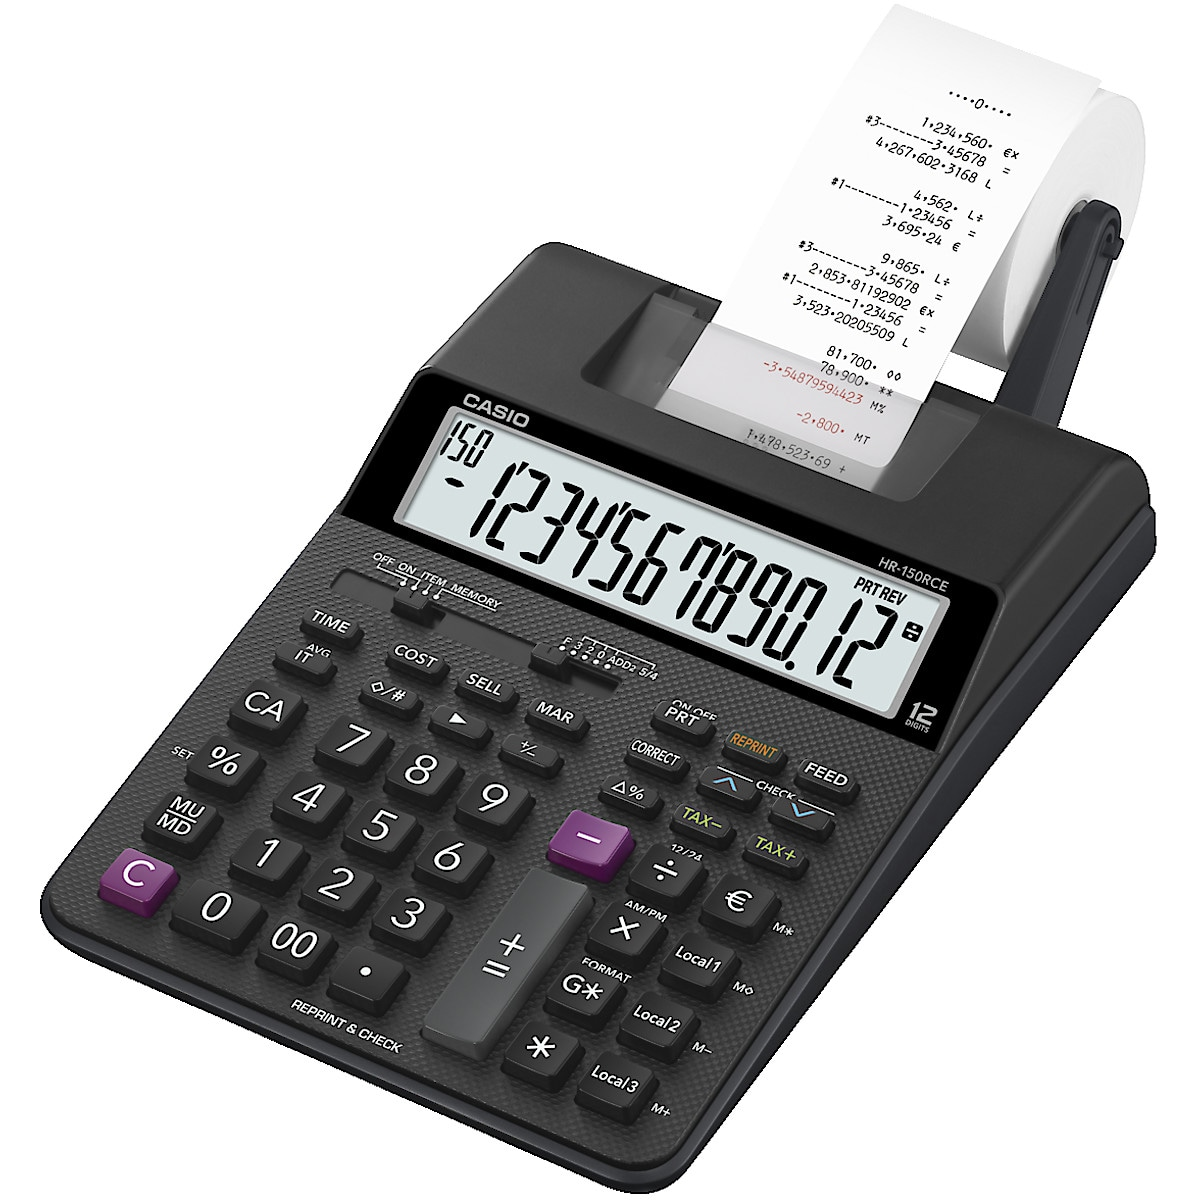 Casio 150RCE Printing Calculator